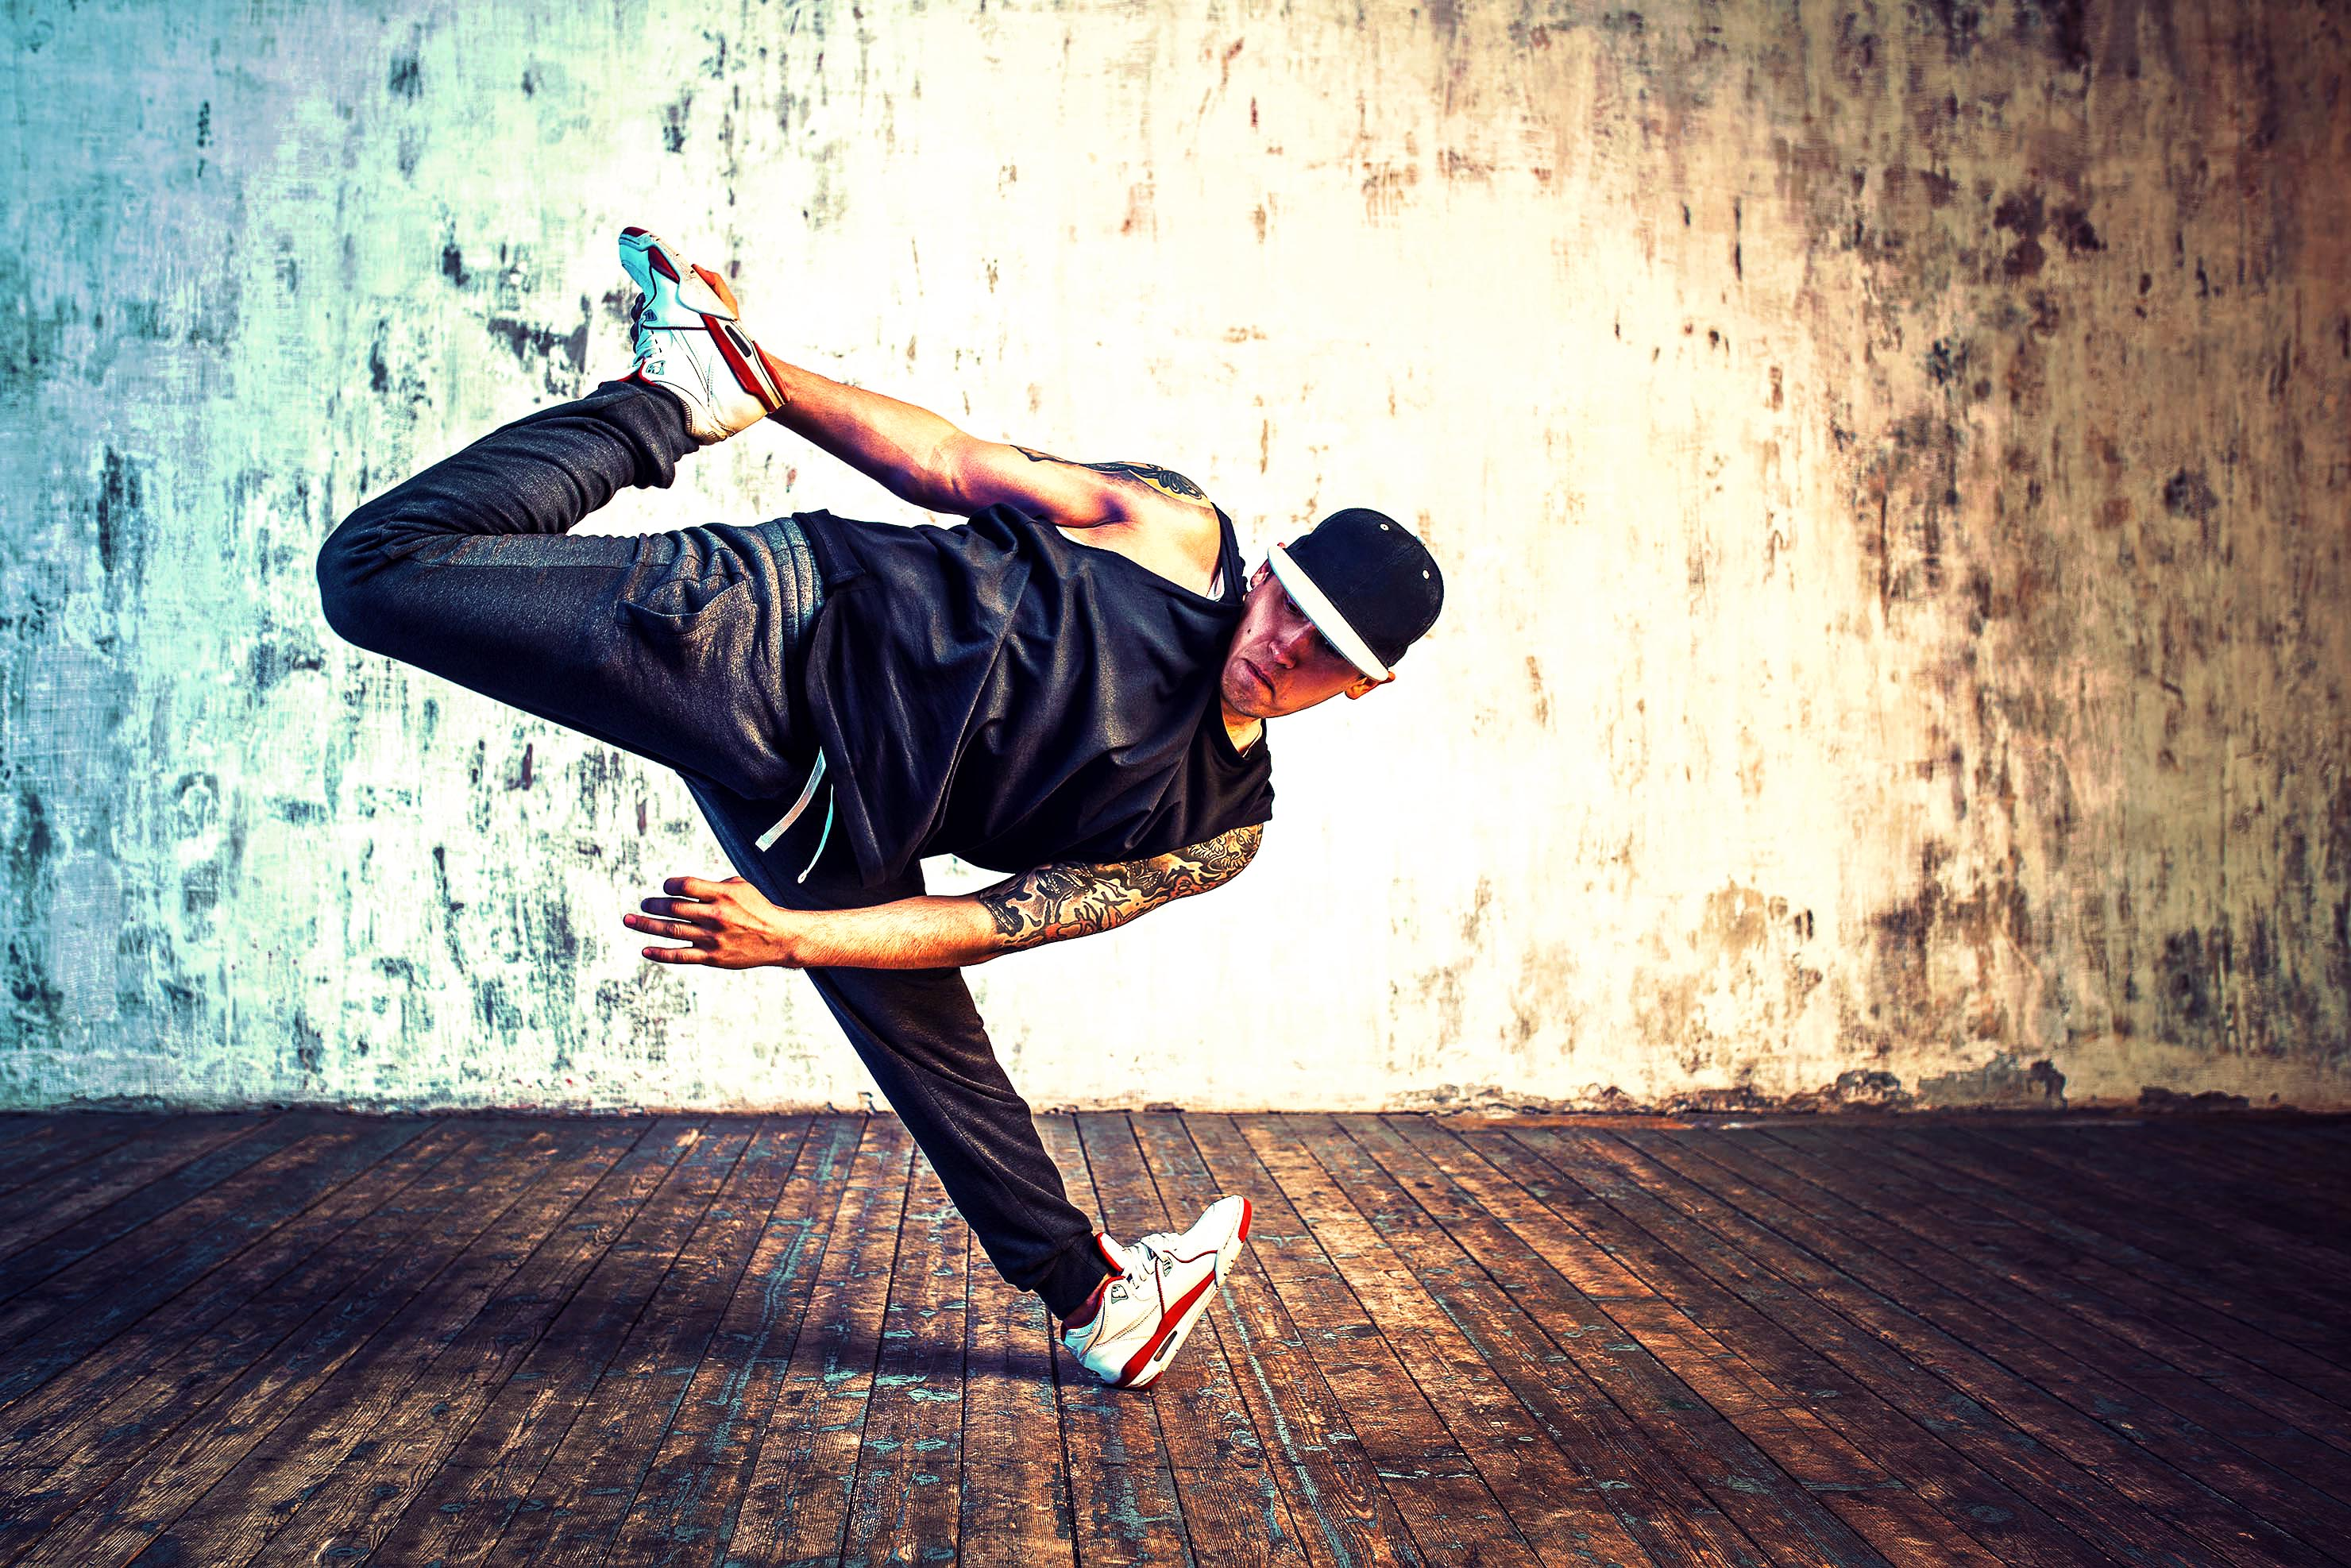 hip hop arteballetto